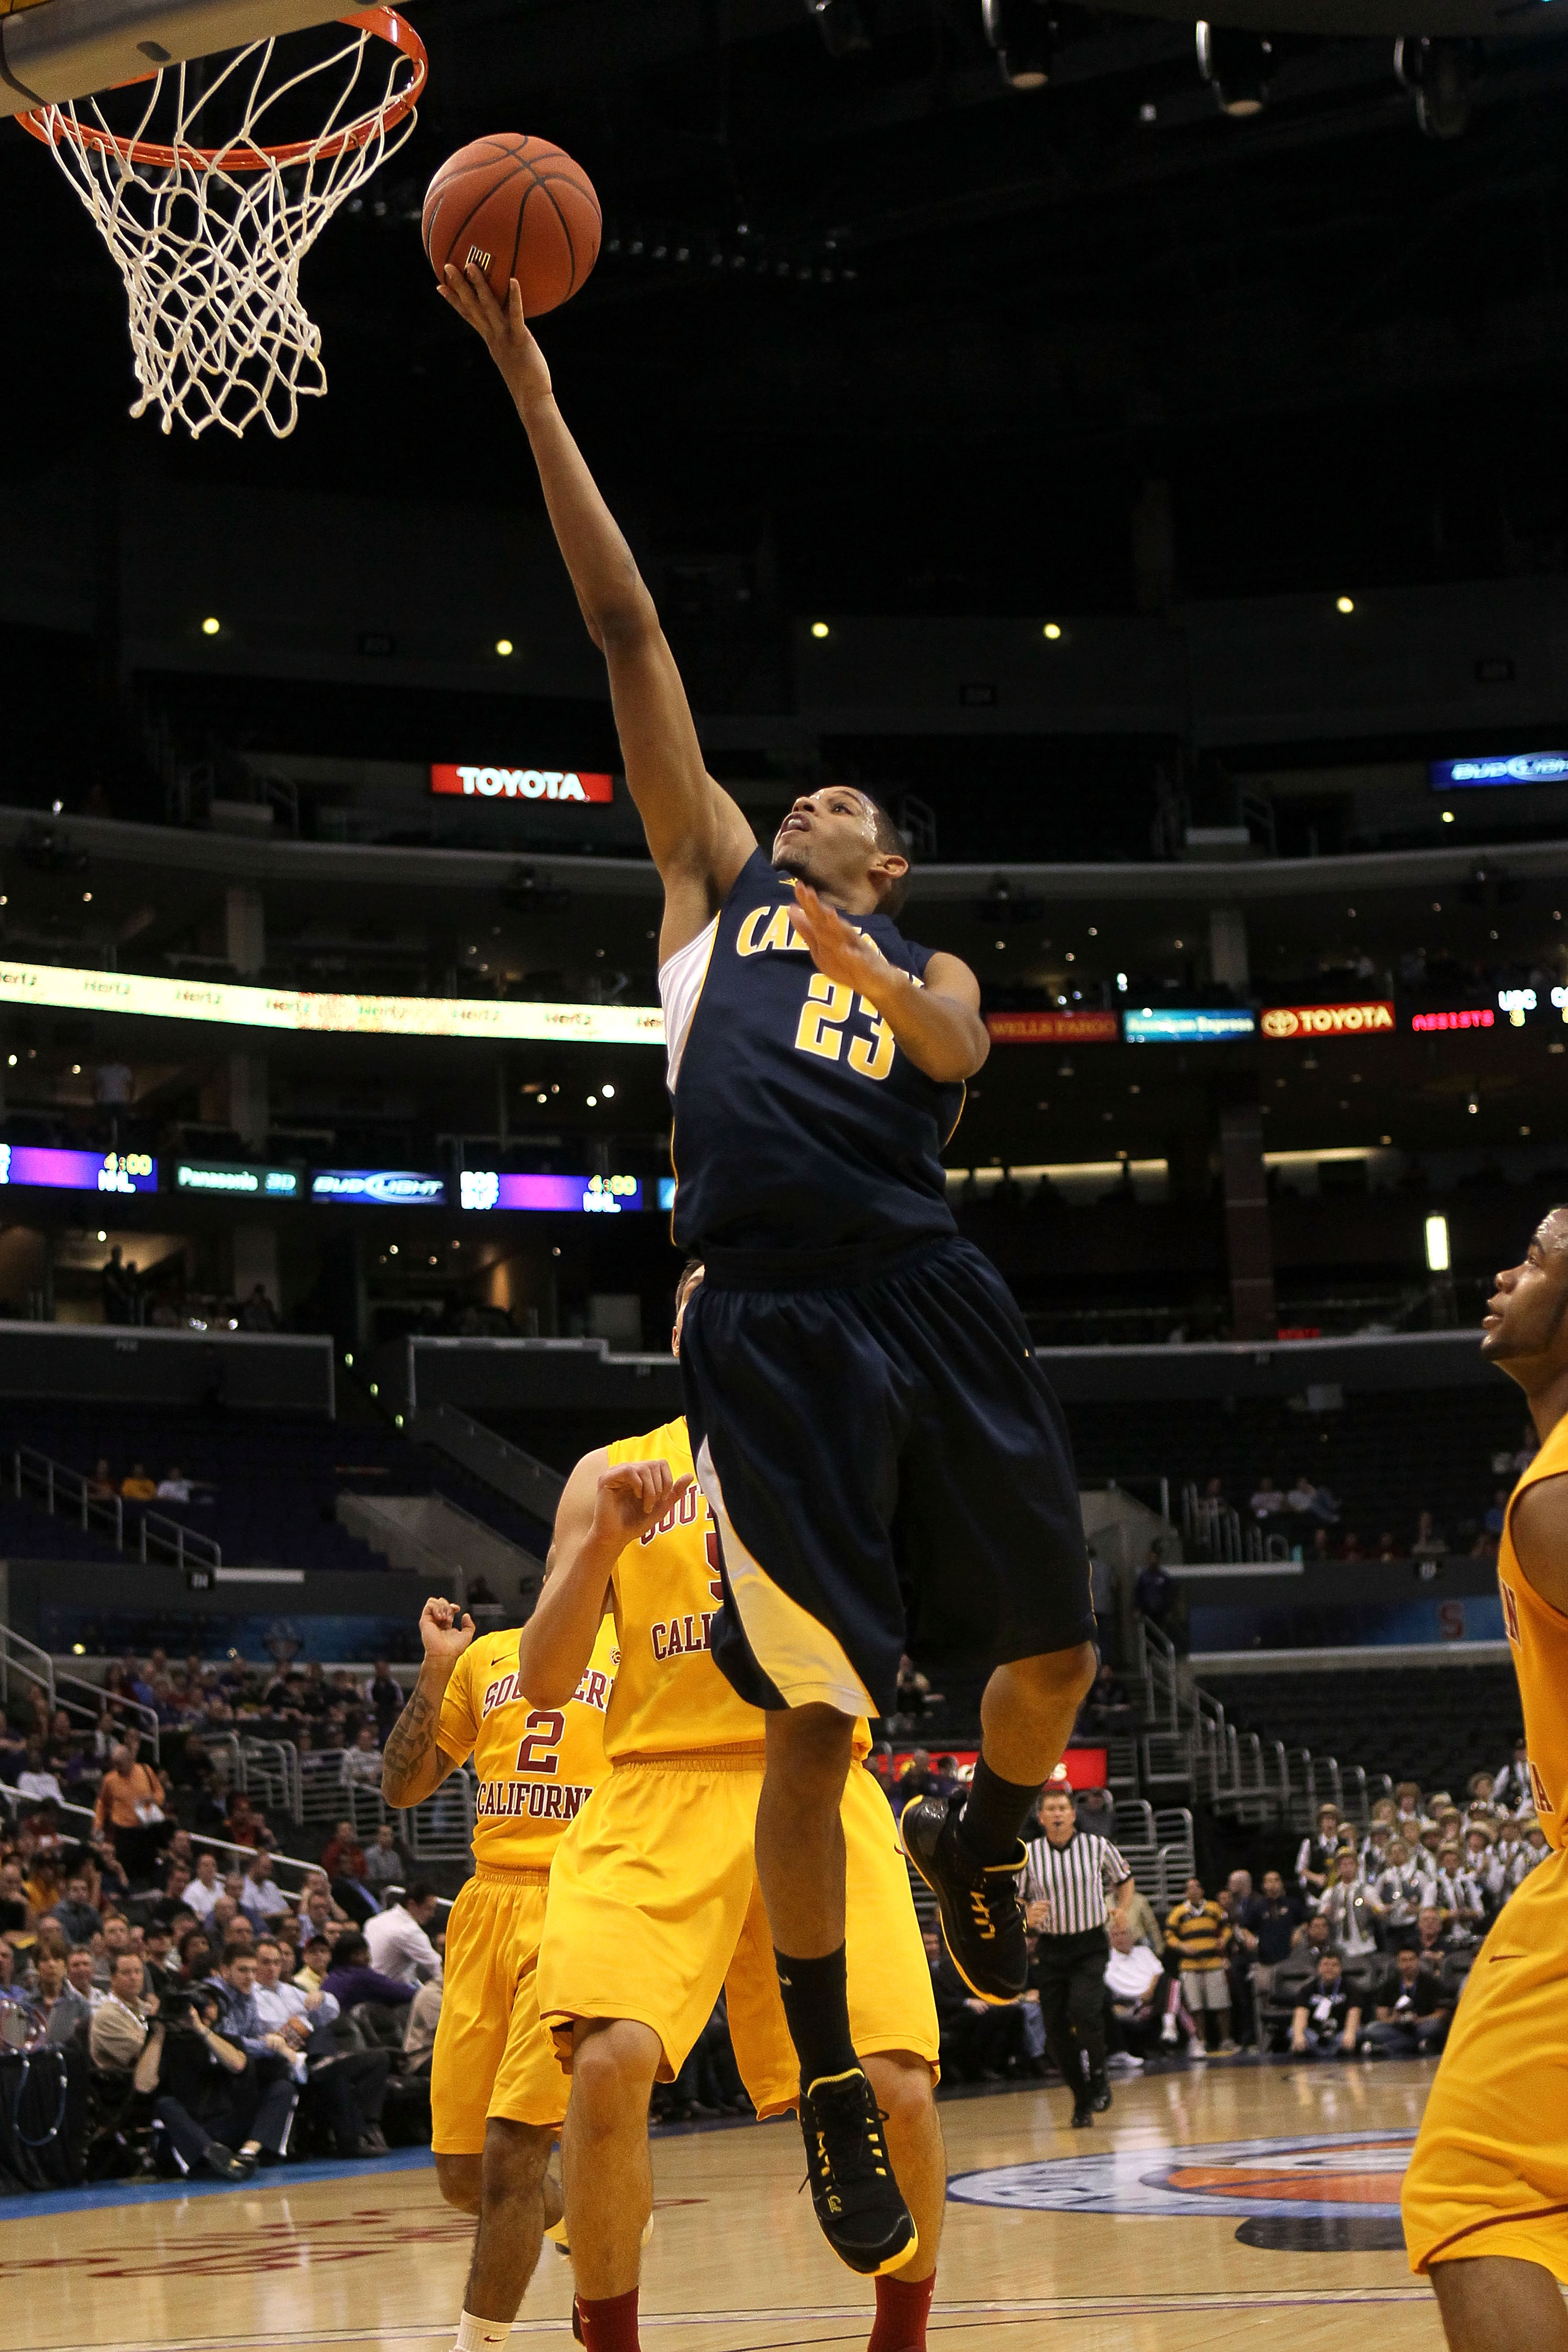 LOS ANGELES, CA - MARCH 10:  Allen Crabbe #23 of the California Golden Bears lays the ball up against the USC Trojans in the quarterfinals of the 2011 Pacific Life Pac-10 Men's Basketball Tournament at Staples Center on March 10, 2011 in Los Angeles, Cali